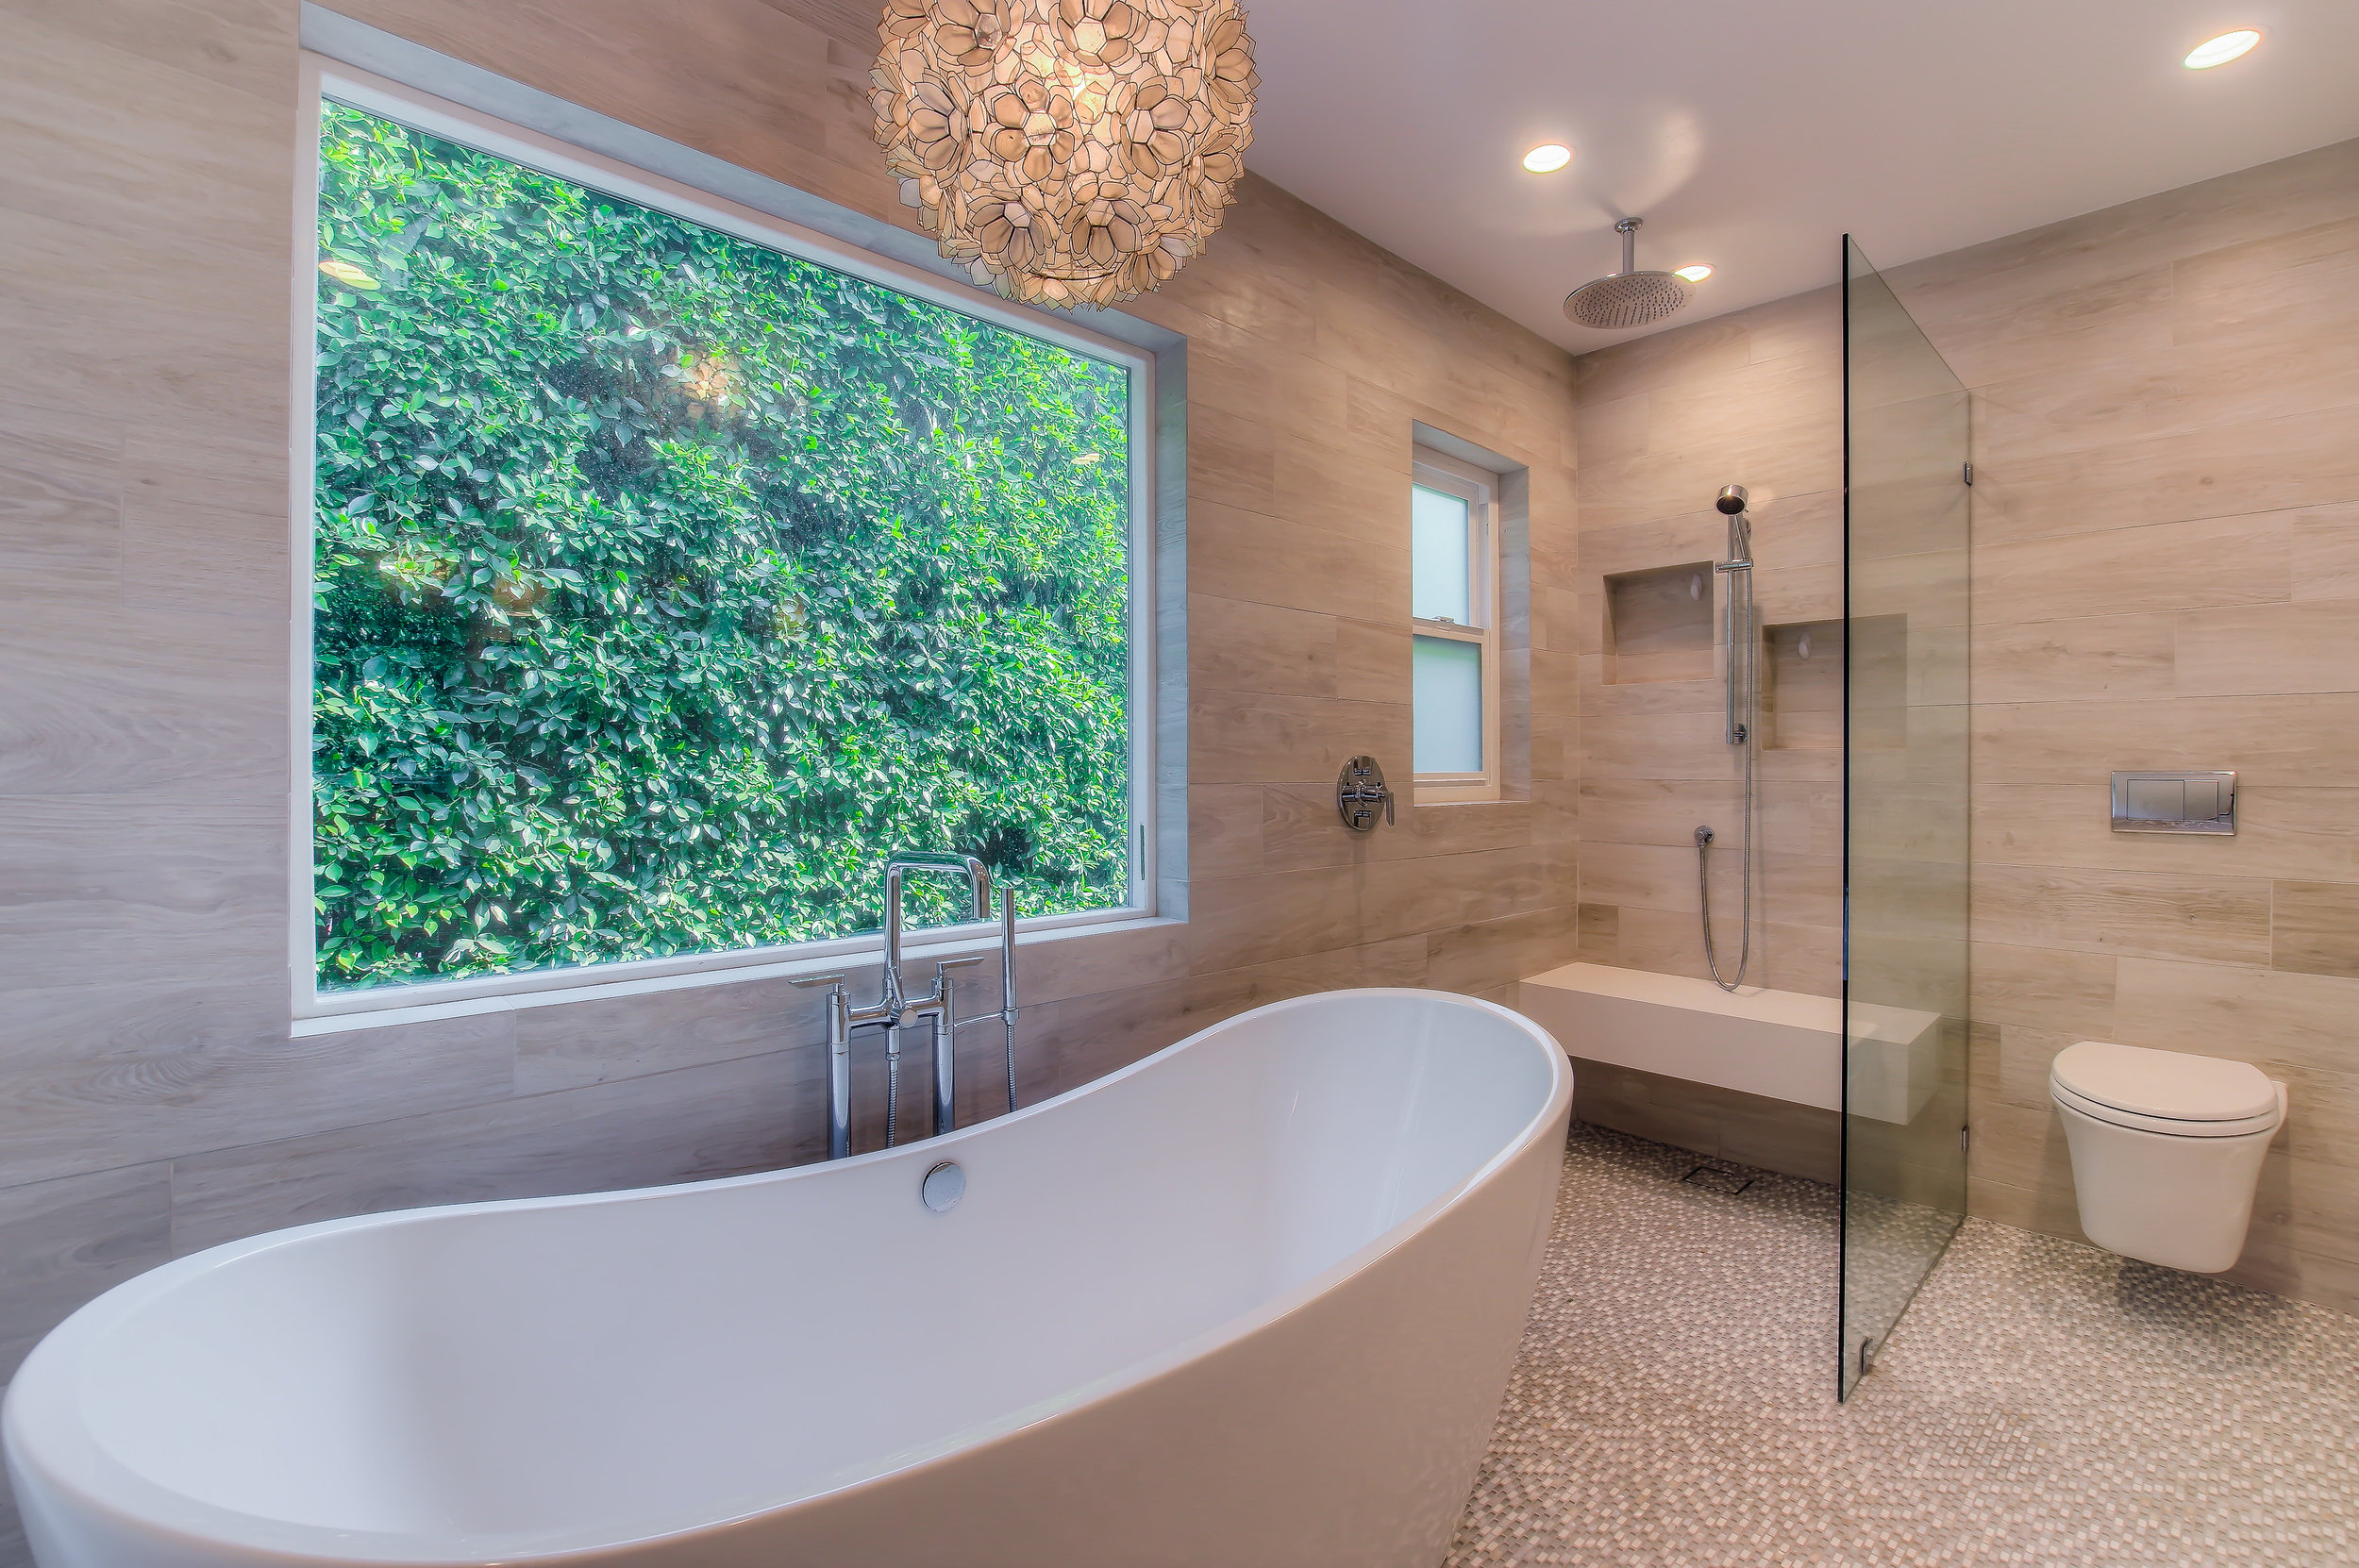 West LA bathroom design remodel